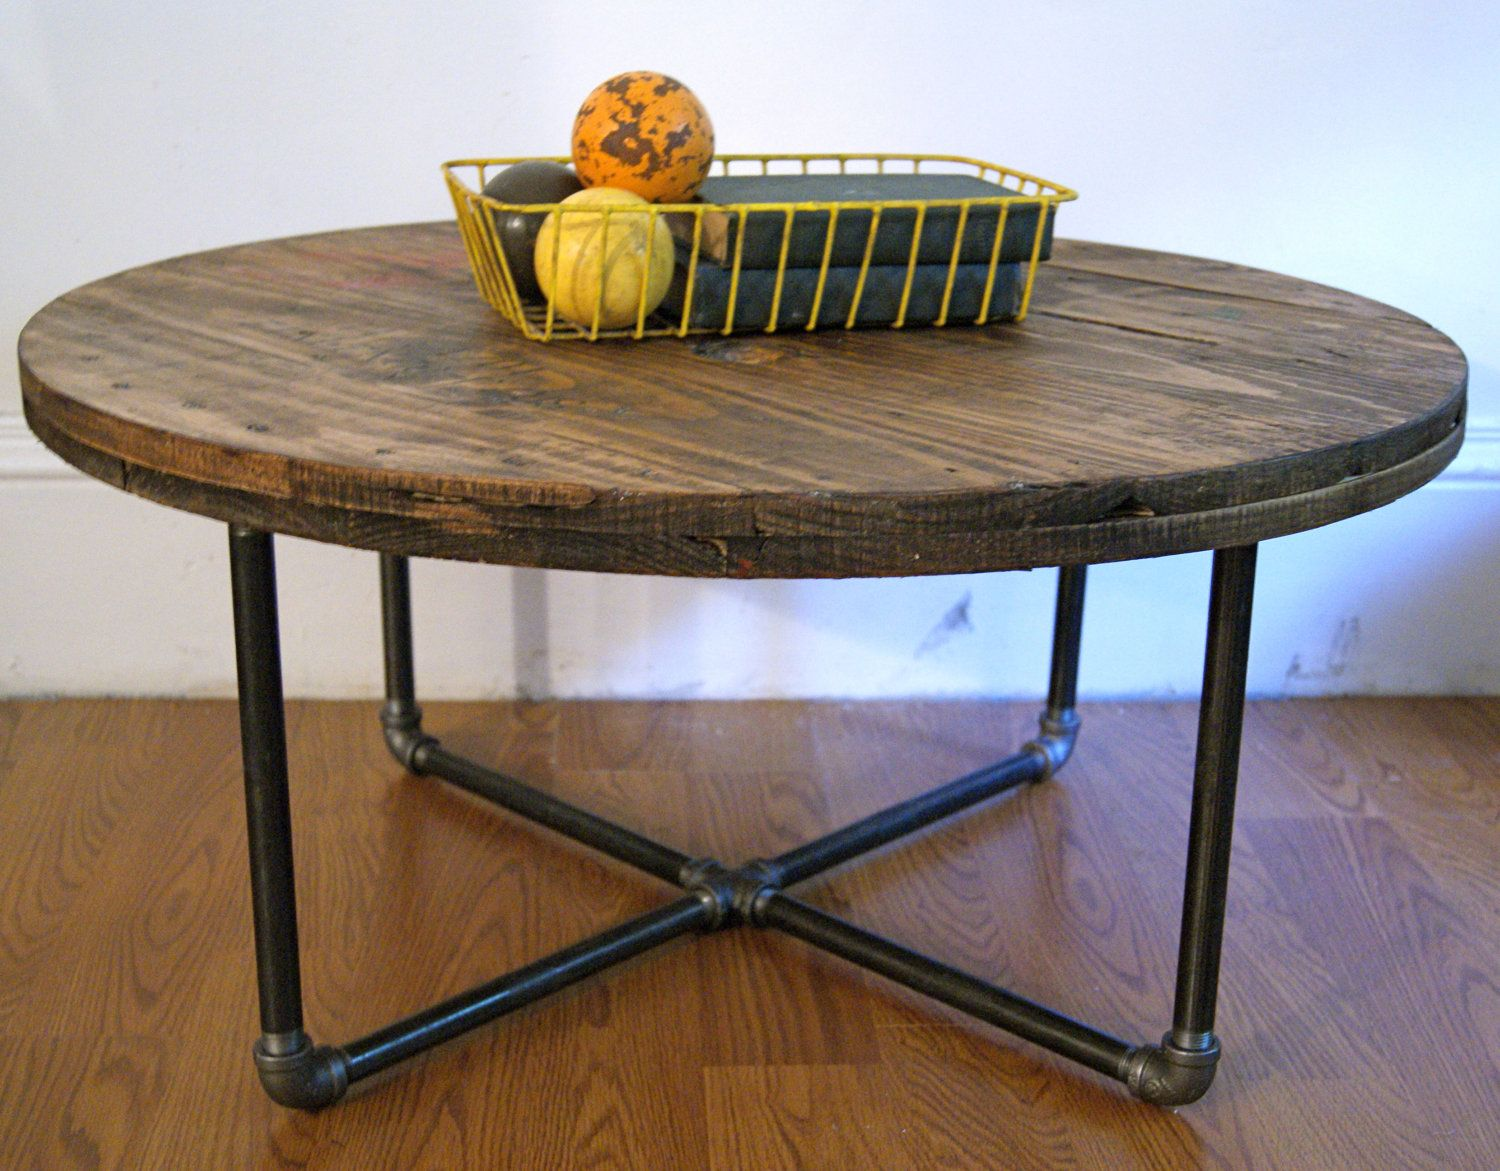 How to make a sofa table from cable wood reel - Round Reclaimed Salvaged Wood Spool Table With Steel Pipe Base Great Rustic Industrial Style Piece Keith Can Make